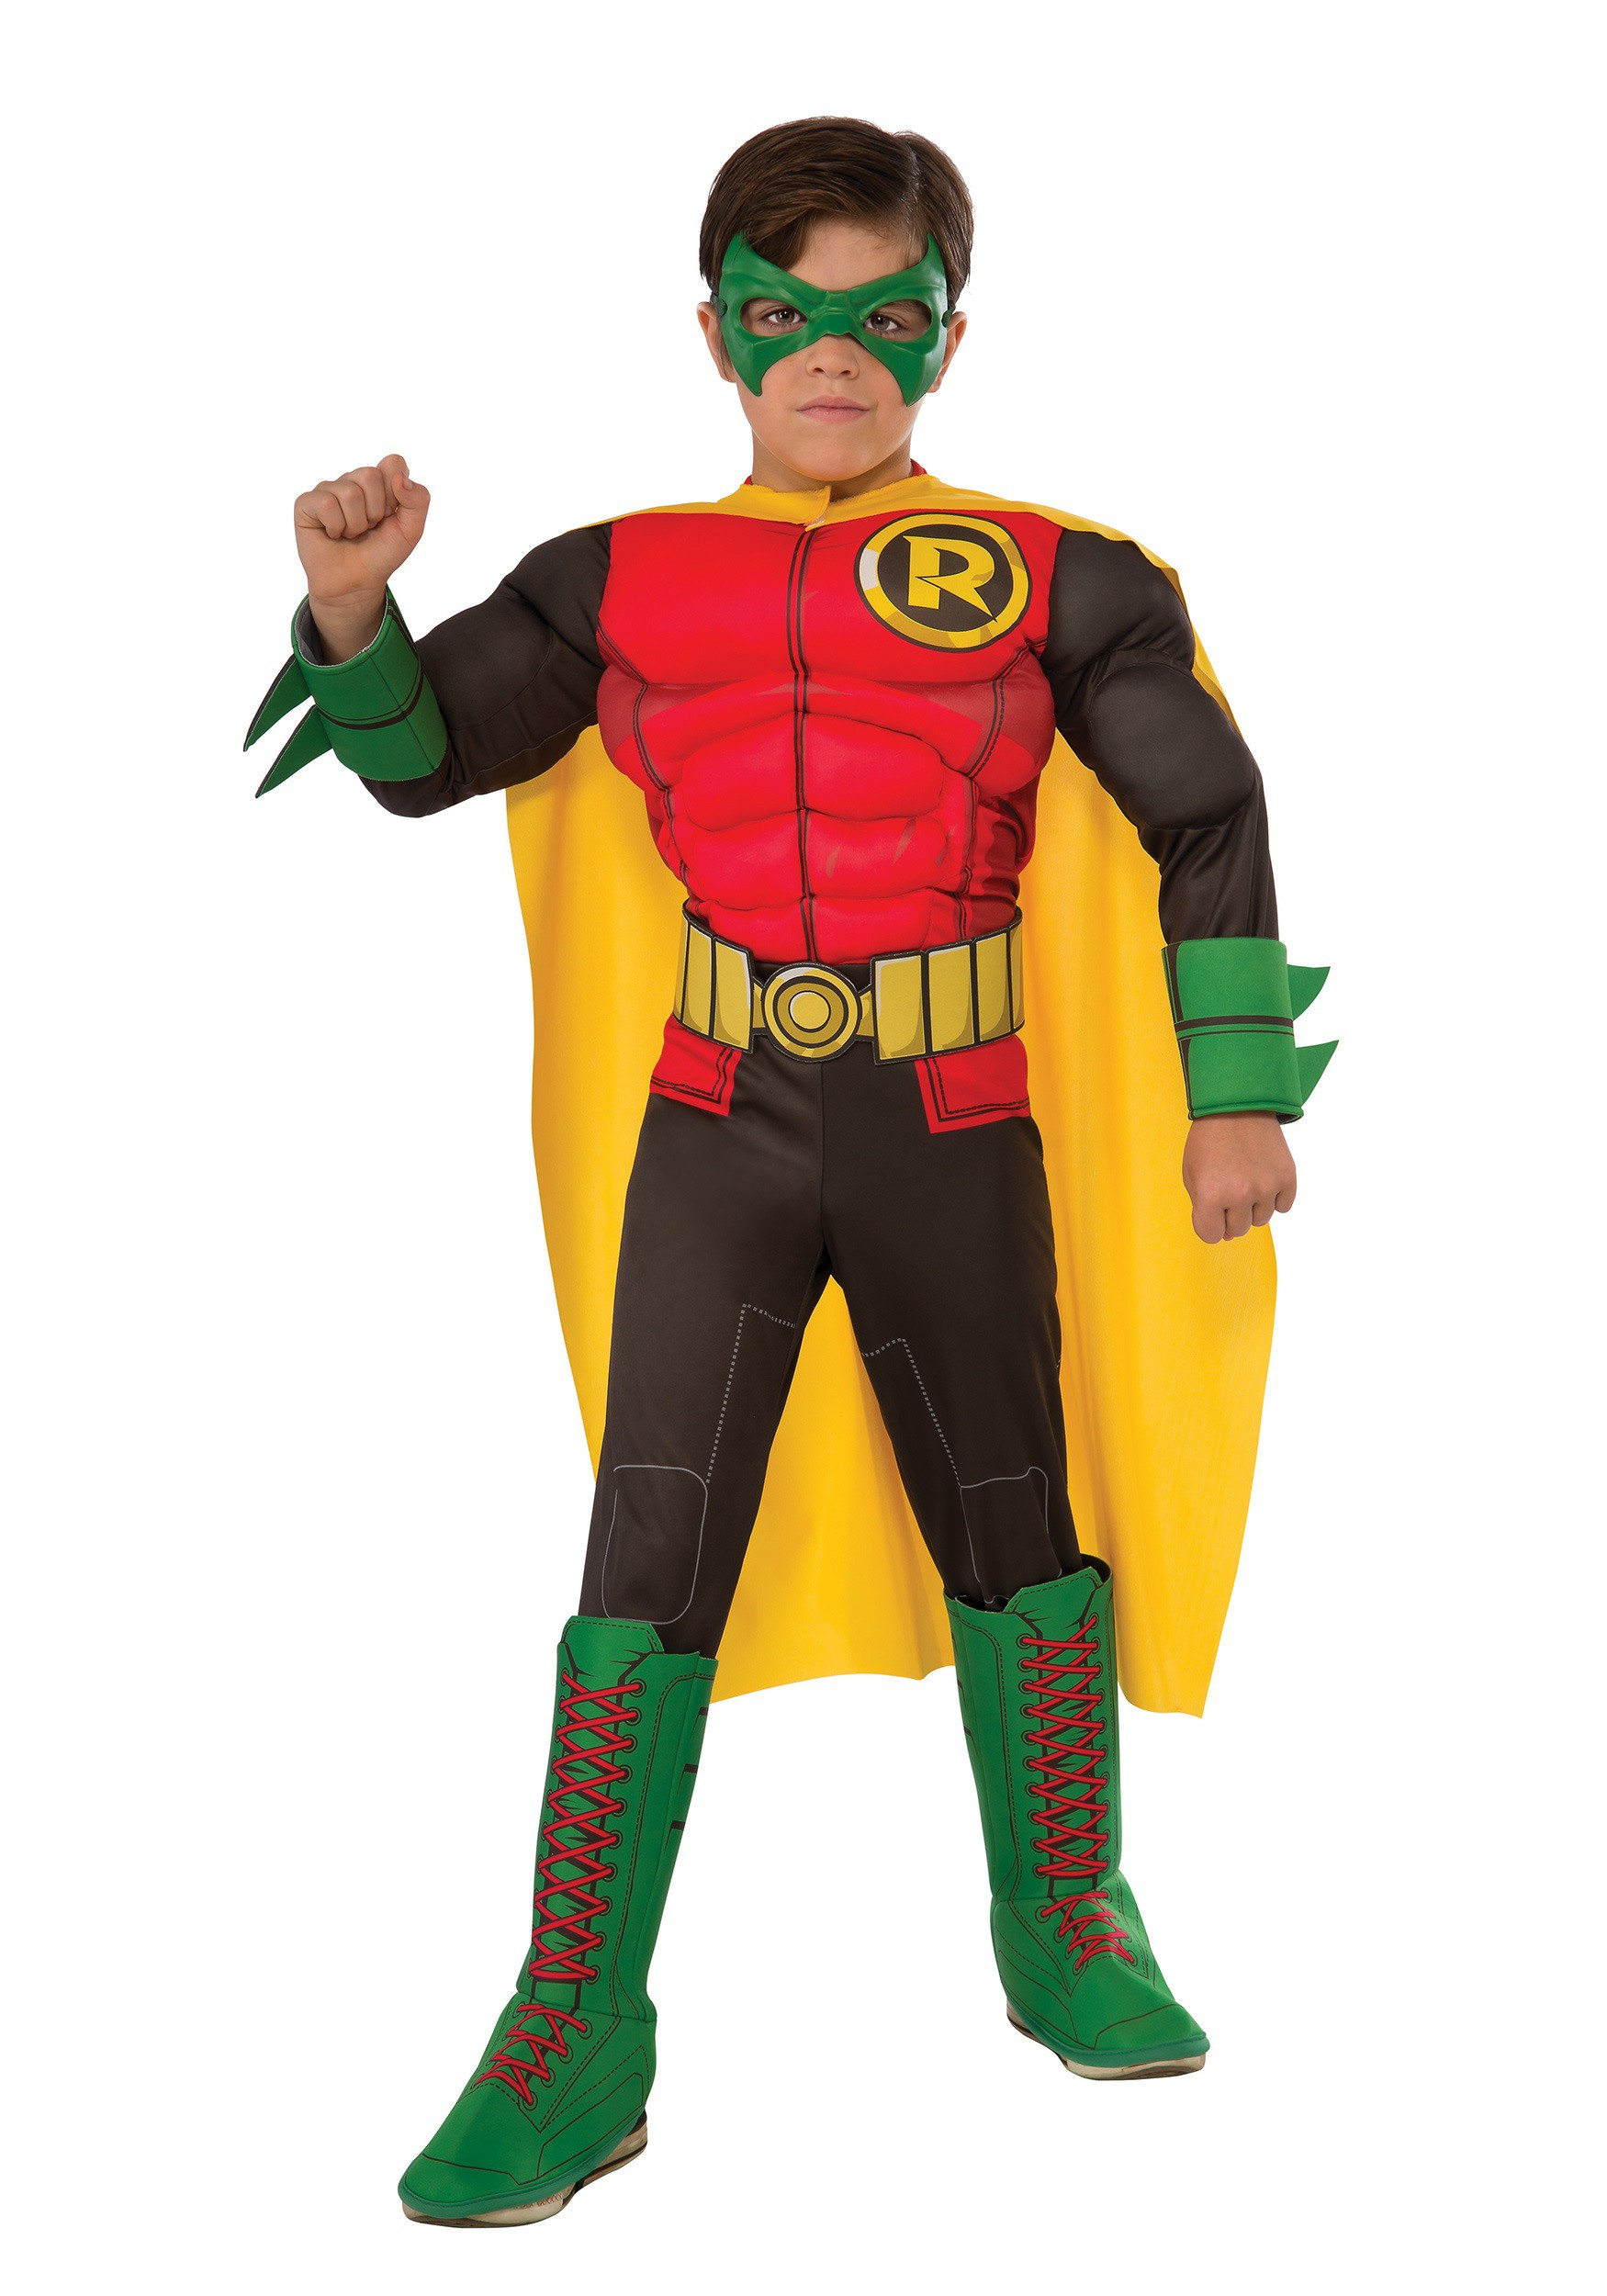 ee5bc7f4e772 DC Comics Deluxe Robin Costume for kids